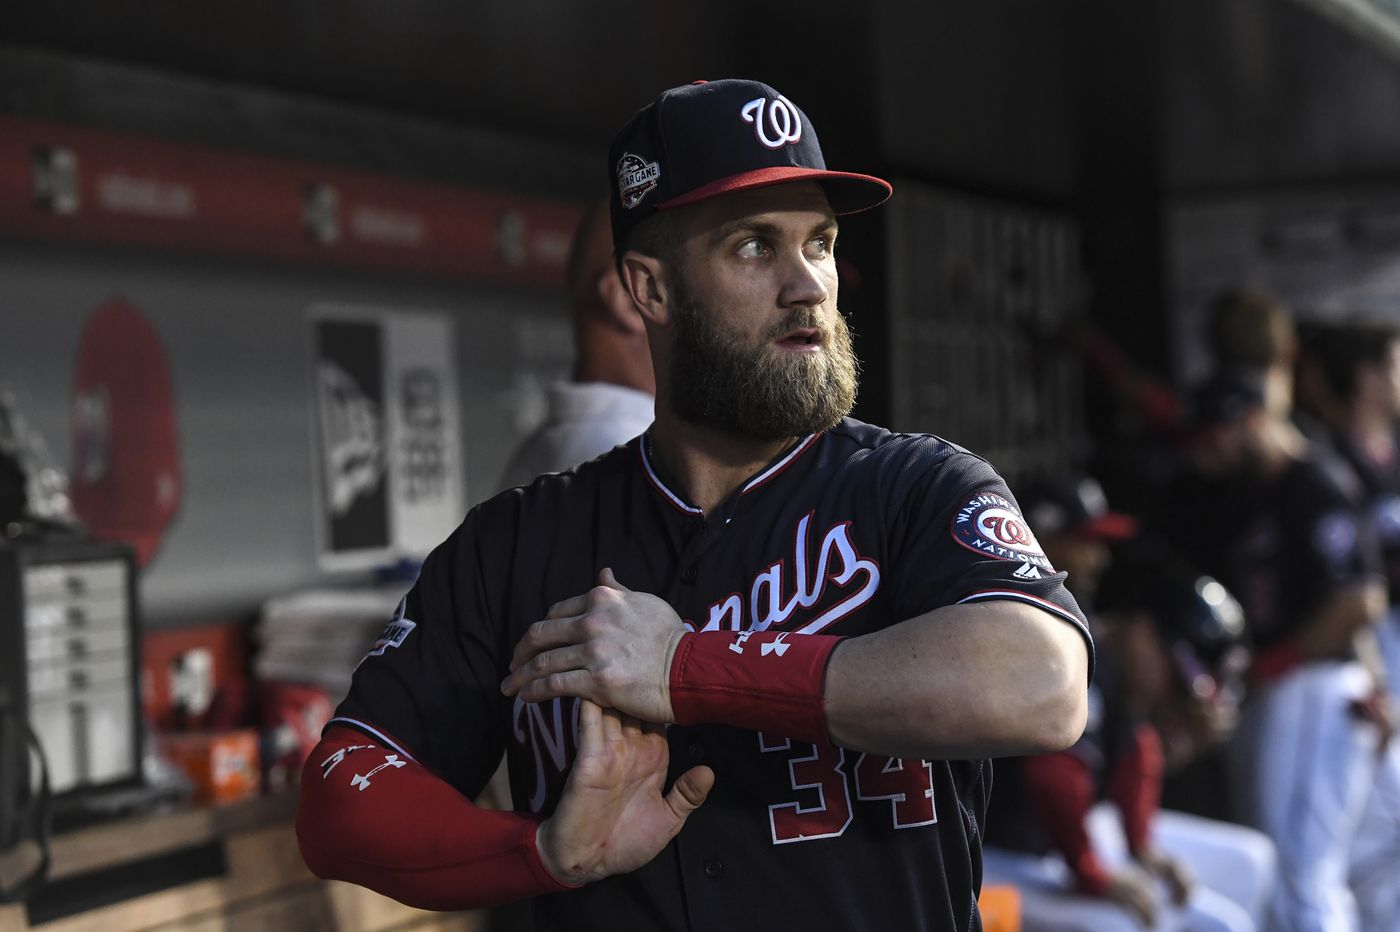 brand new 2ee0c 4cde1 Bryce Harper on the Phillies: That fight with Jonathan ...